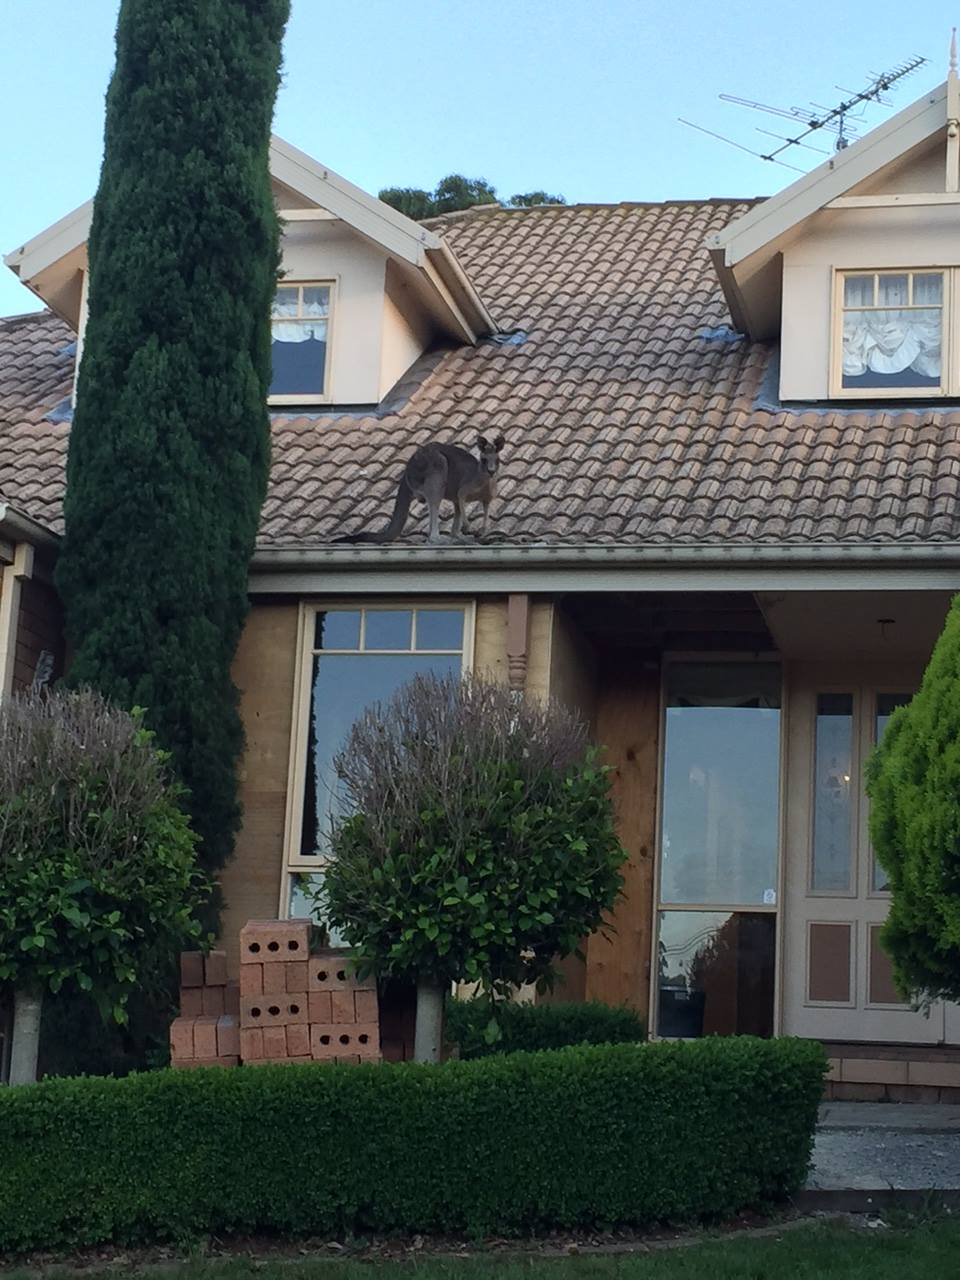 Sharon helped this kangaroo down after it found itself in an unexpected situation. As this house is on a slope, Sharon believes the roo must have jumped from the neighbouring garden which is at a higher elevation - not from the ground!  Image: Wildlife Rescuers